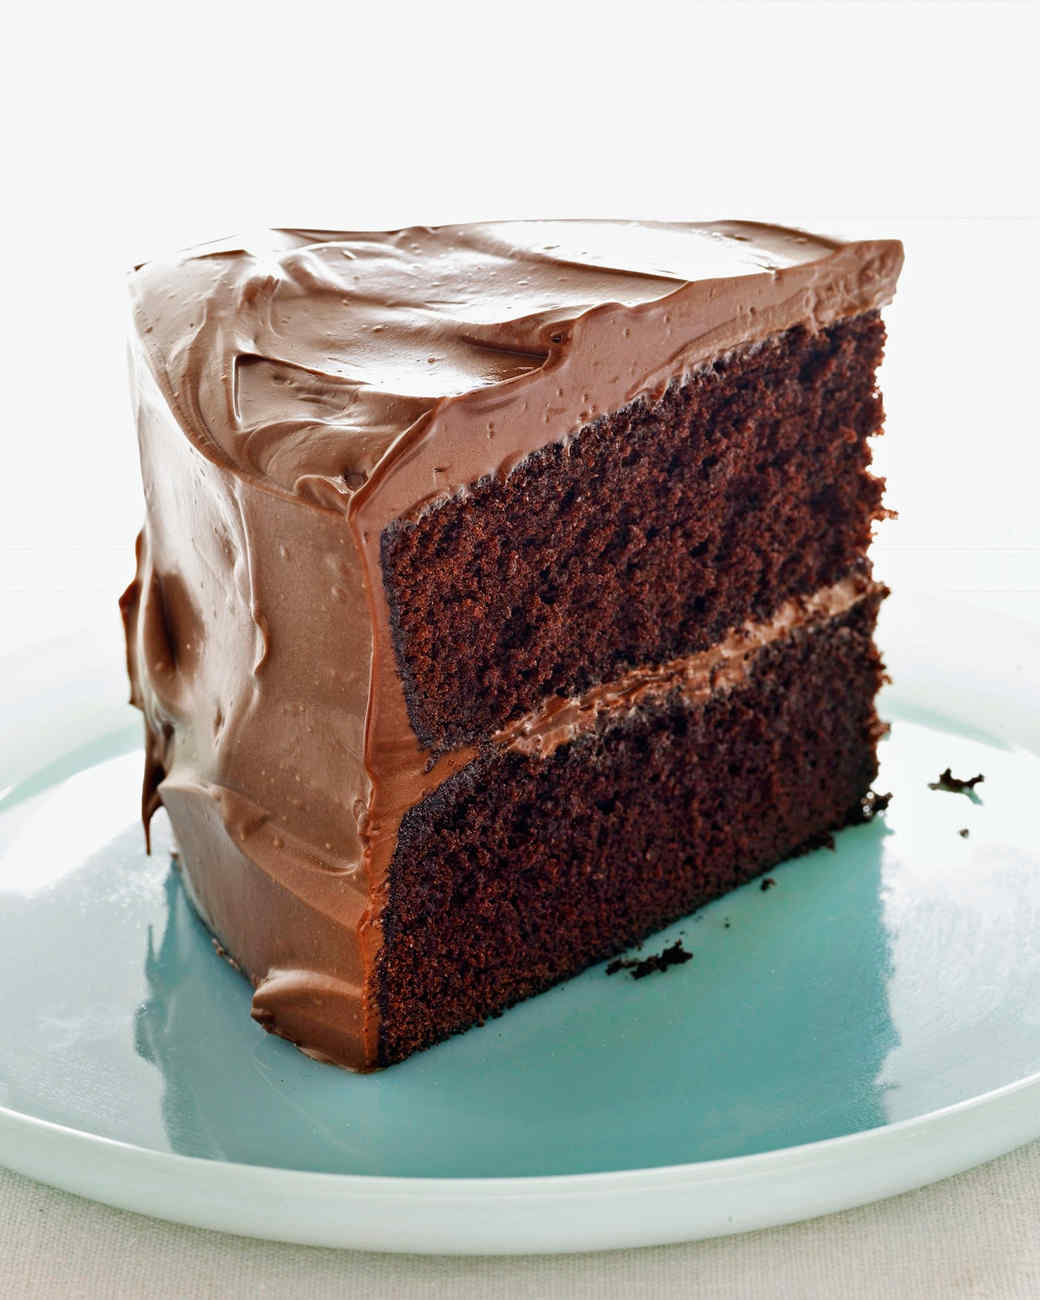 Permalink to Chocolate Cake With Peanut Butter Frosting Uk